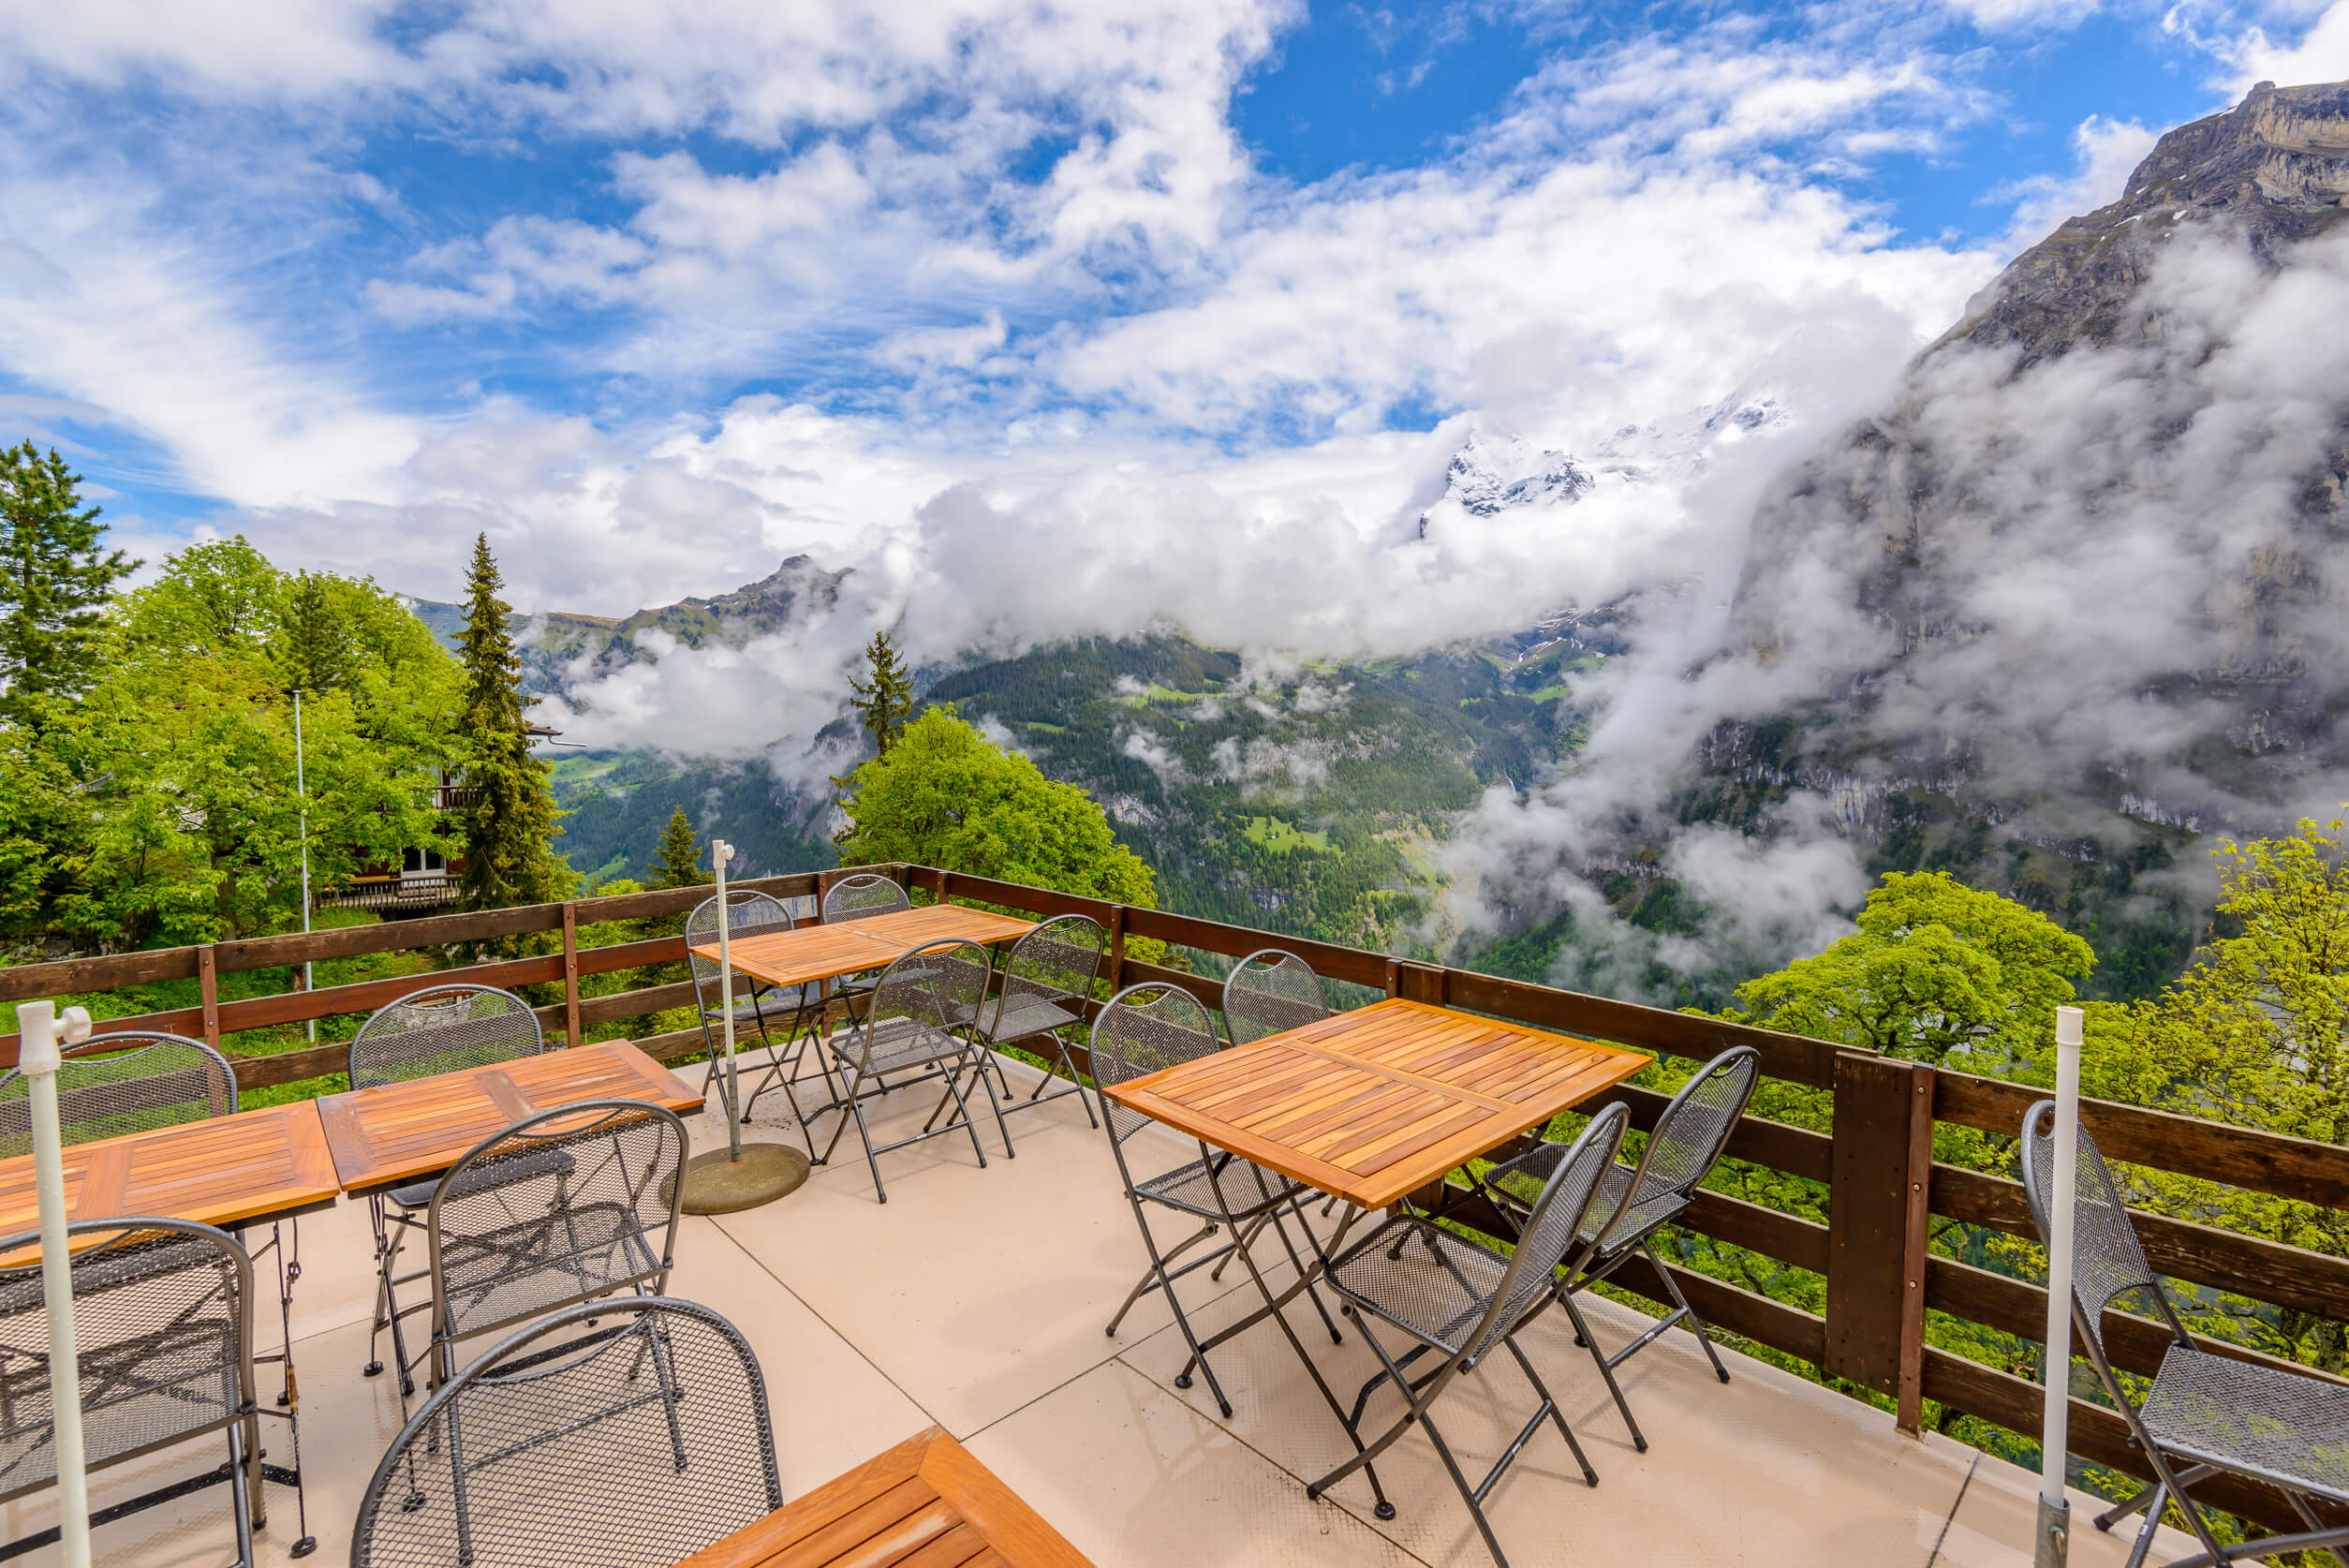 Cafe overlooking the Jungfrau Alps